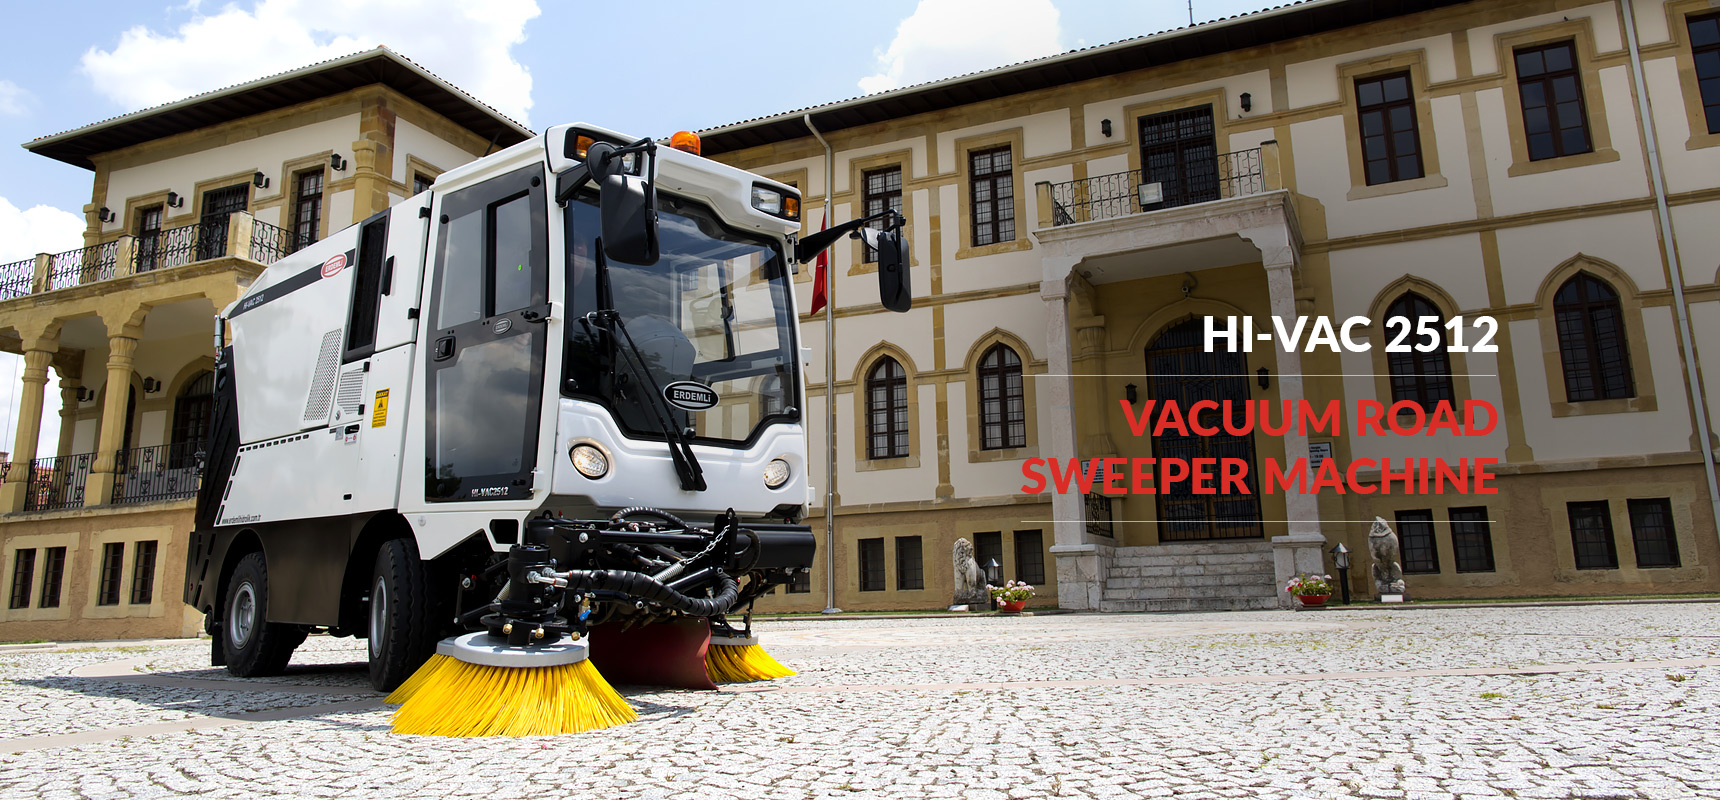 ERDEMLI HYDRAULIC: Vacuum Road Sweeper Machine